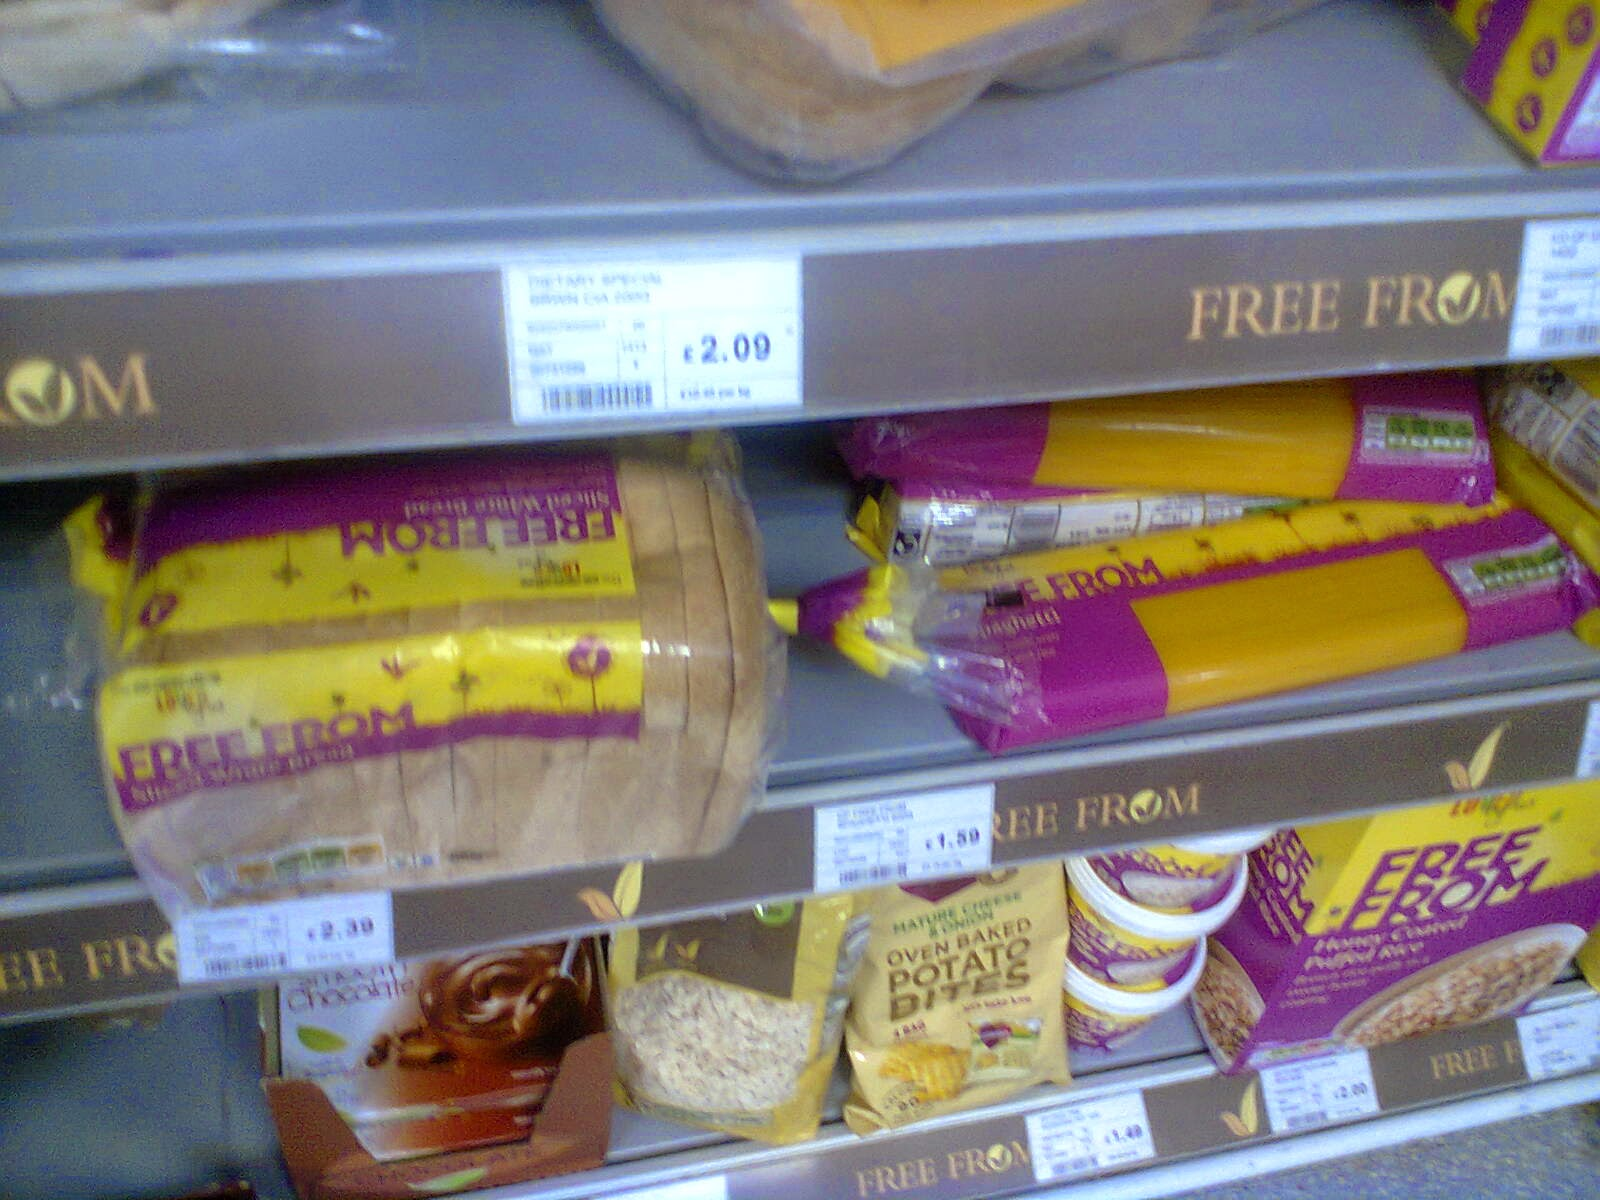 The Co-operative's new Free From bread and spaghetti